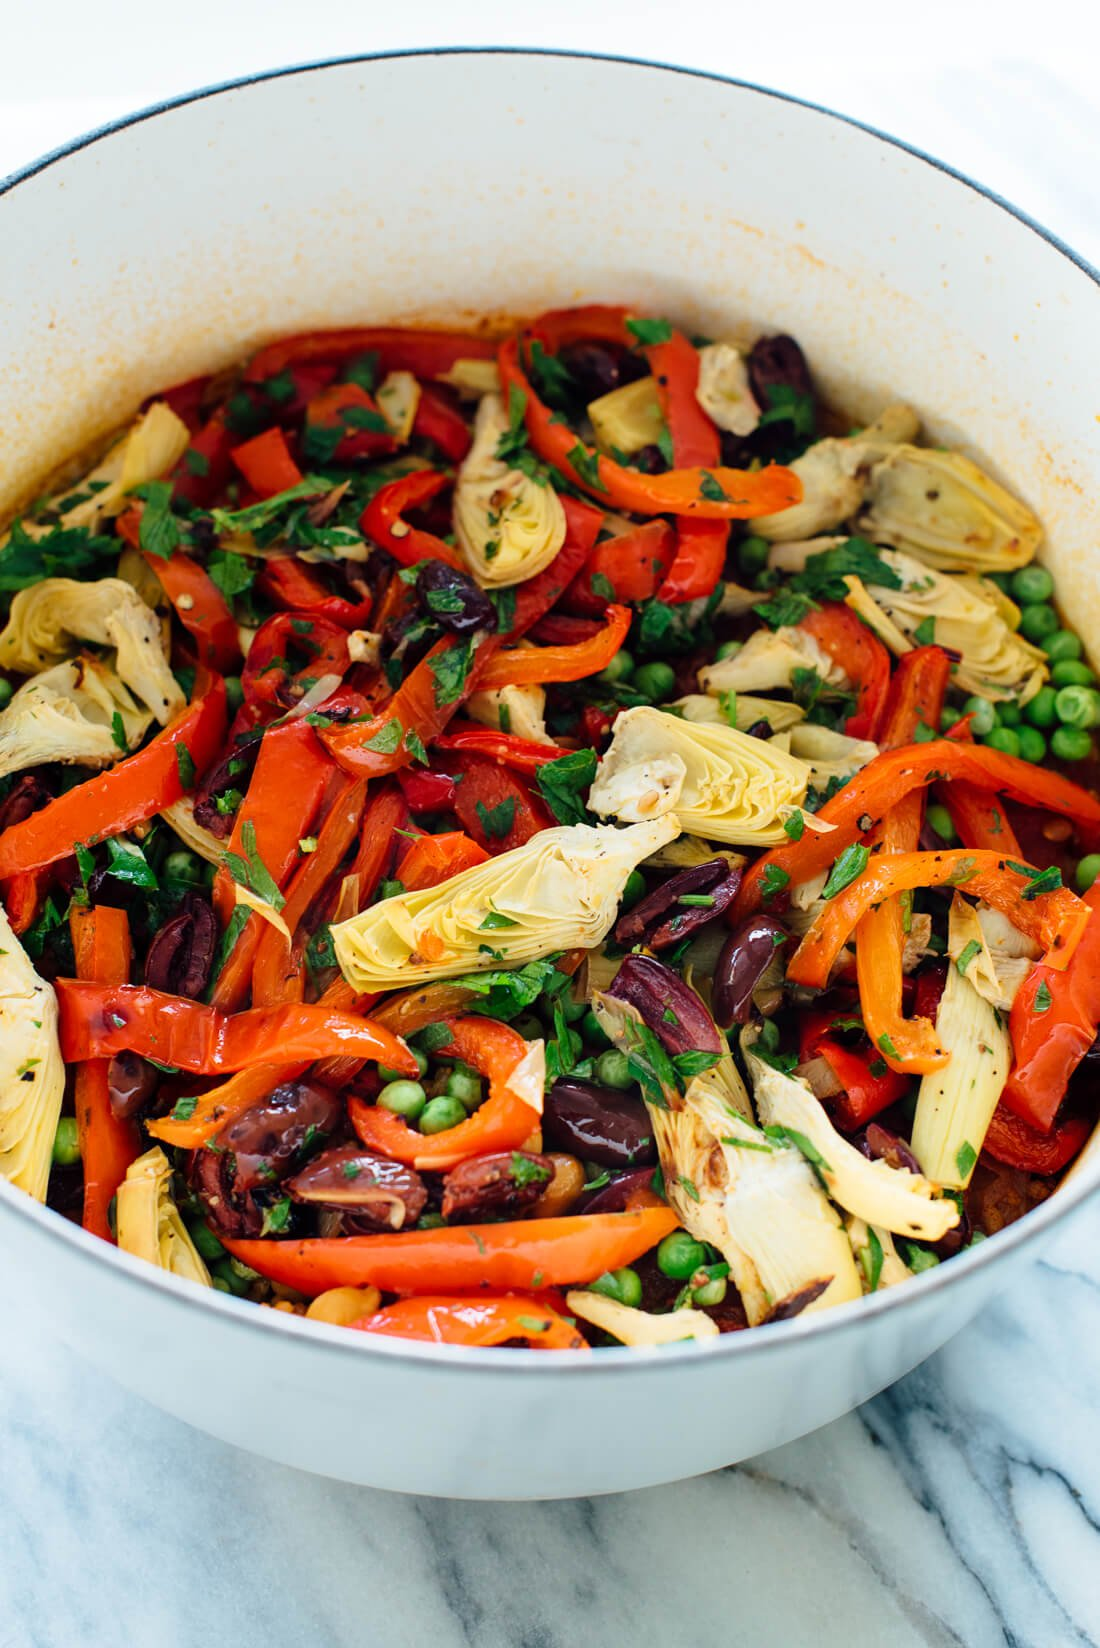 Vegetable paella recipe cookie and kate this vegetable paella recipe is absolutely delicious its easy to make too forumfinder Choice Image